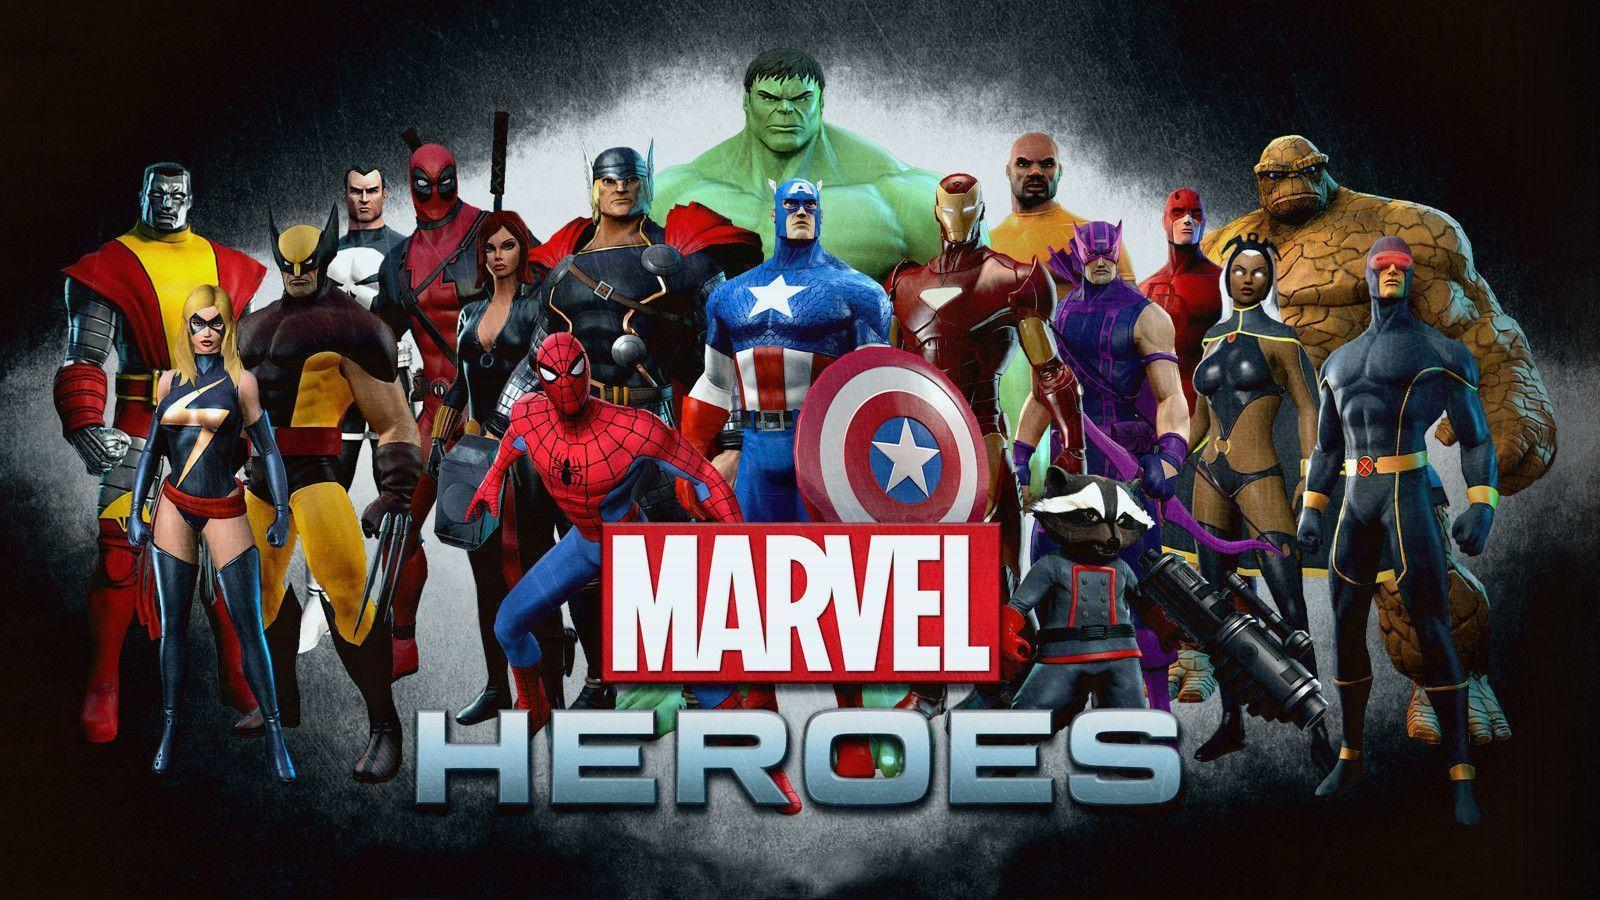 marvel heroes wallpapers - wallpaper cave